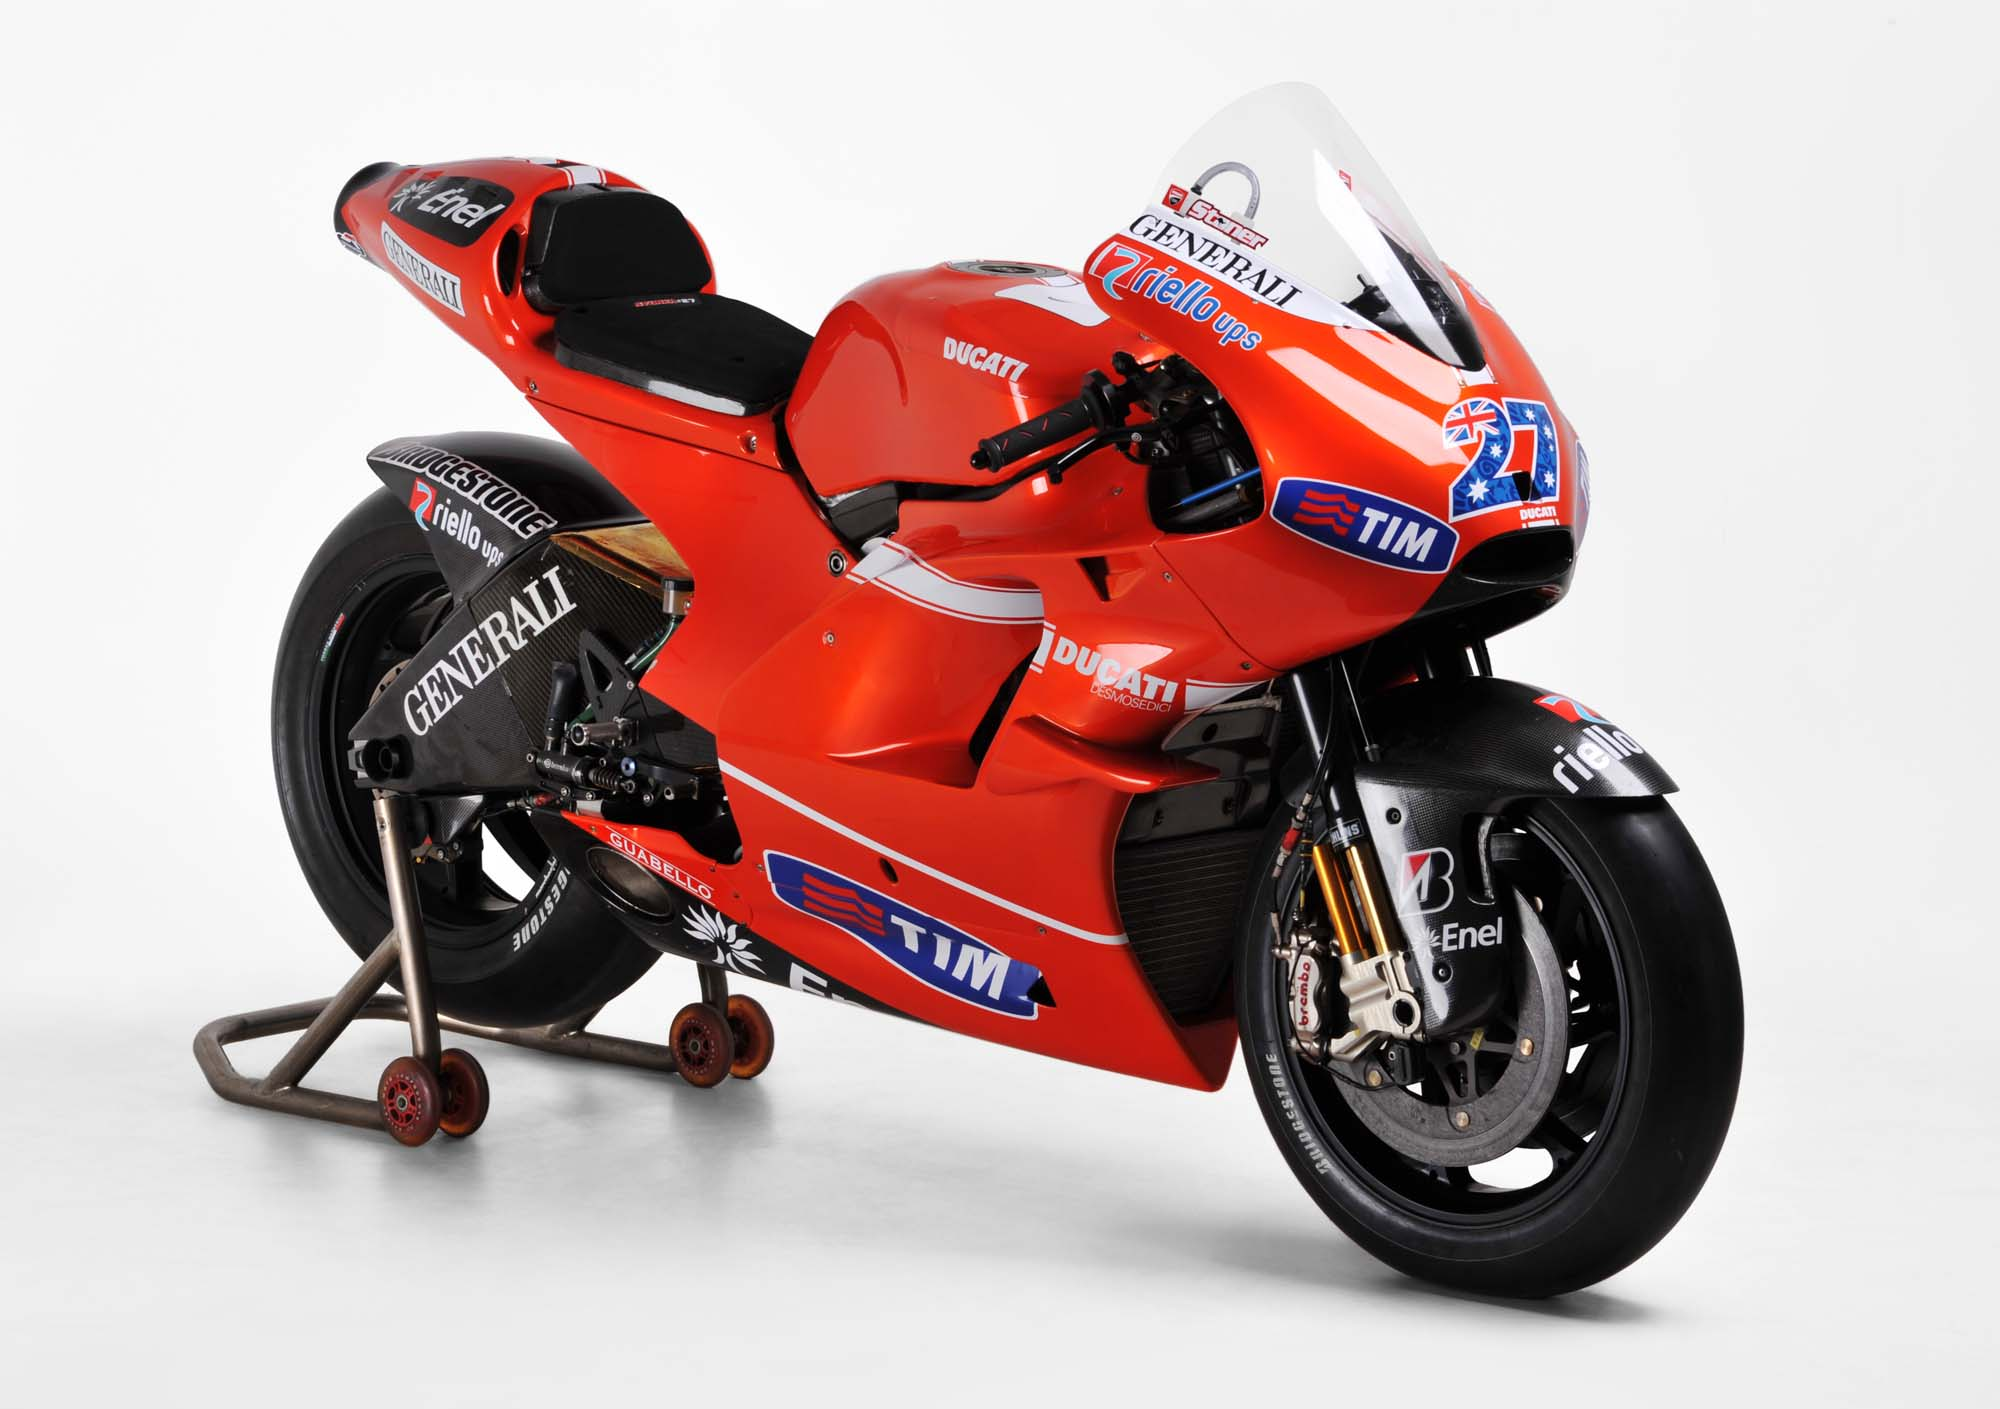 Stoner Rossi S Ducati Motogp Bikes Up For Auction Asphalt Rubber